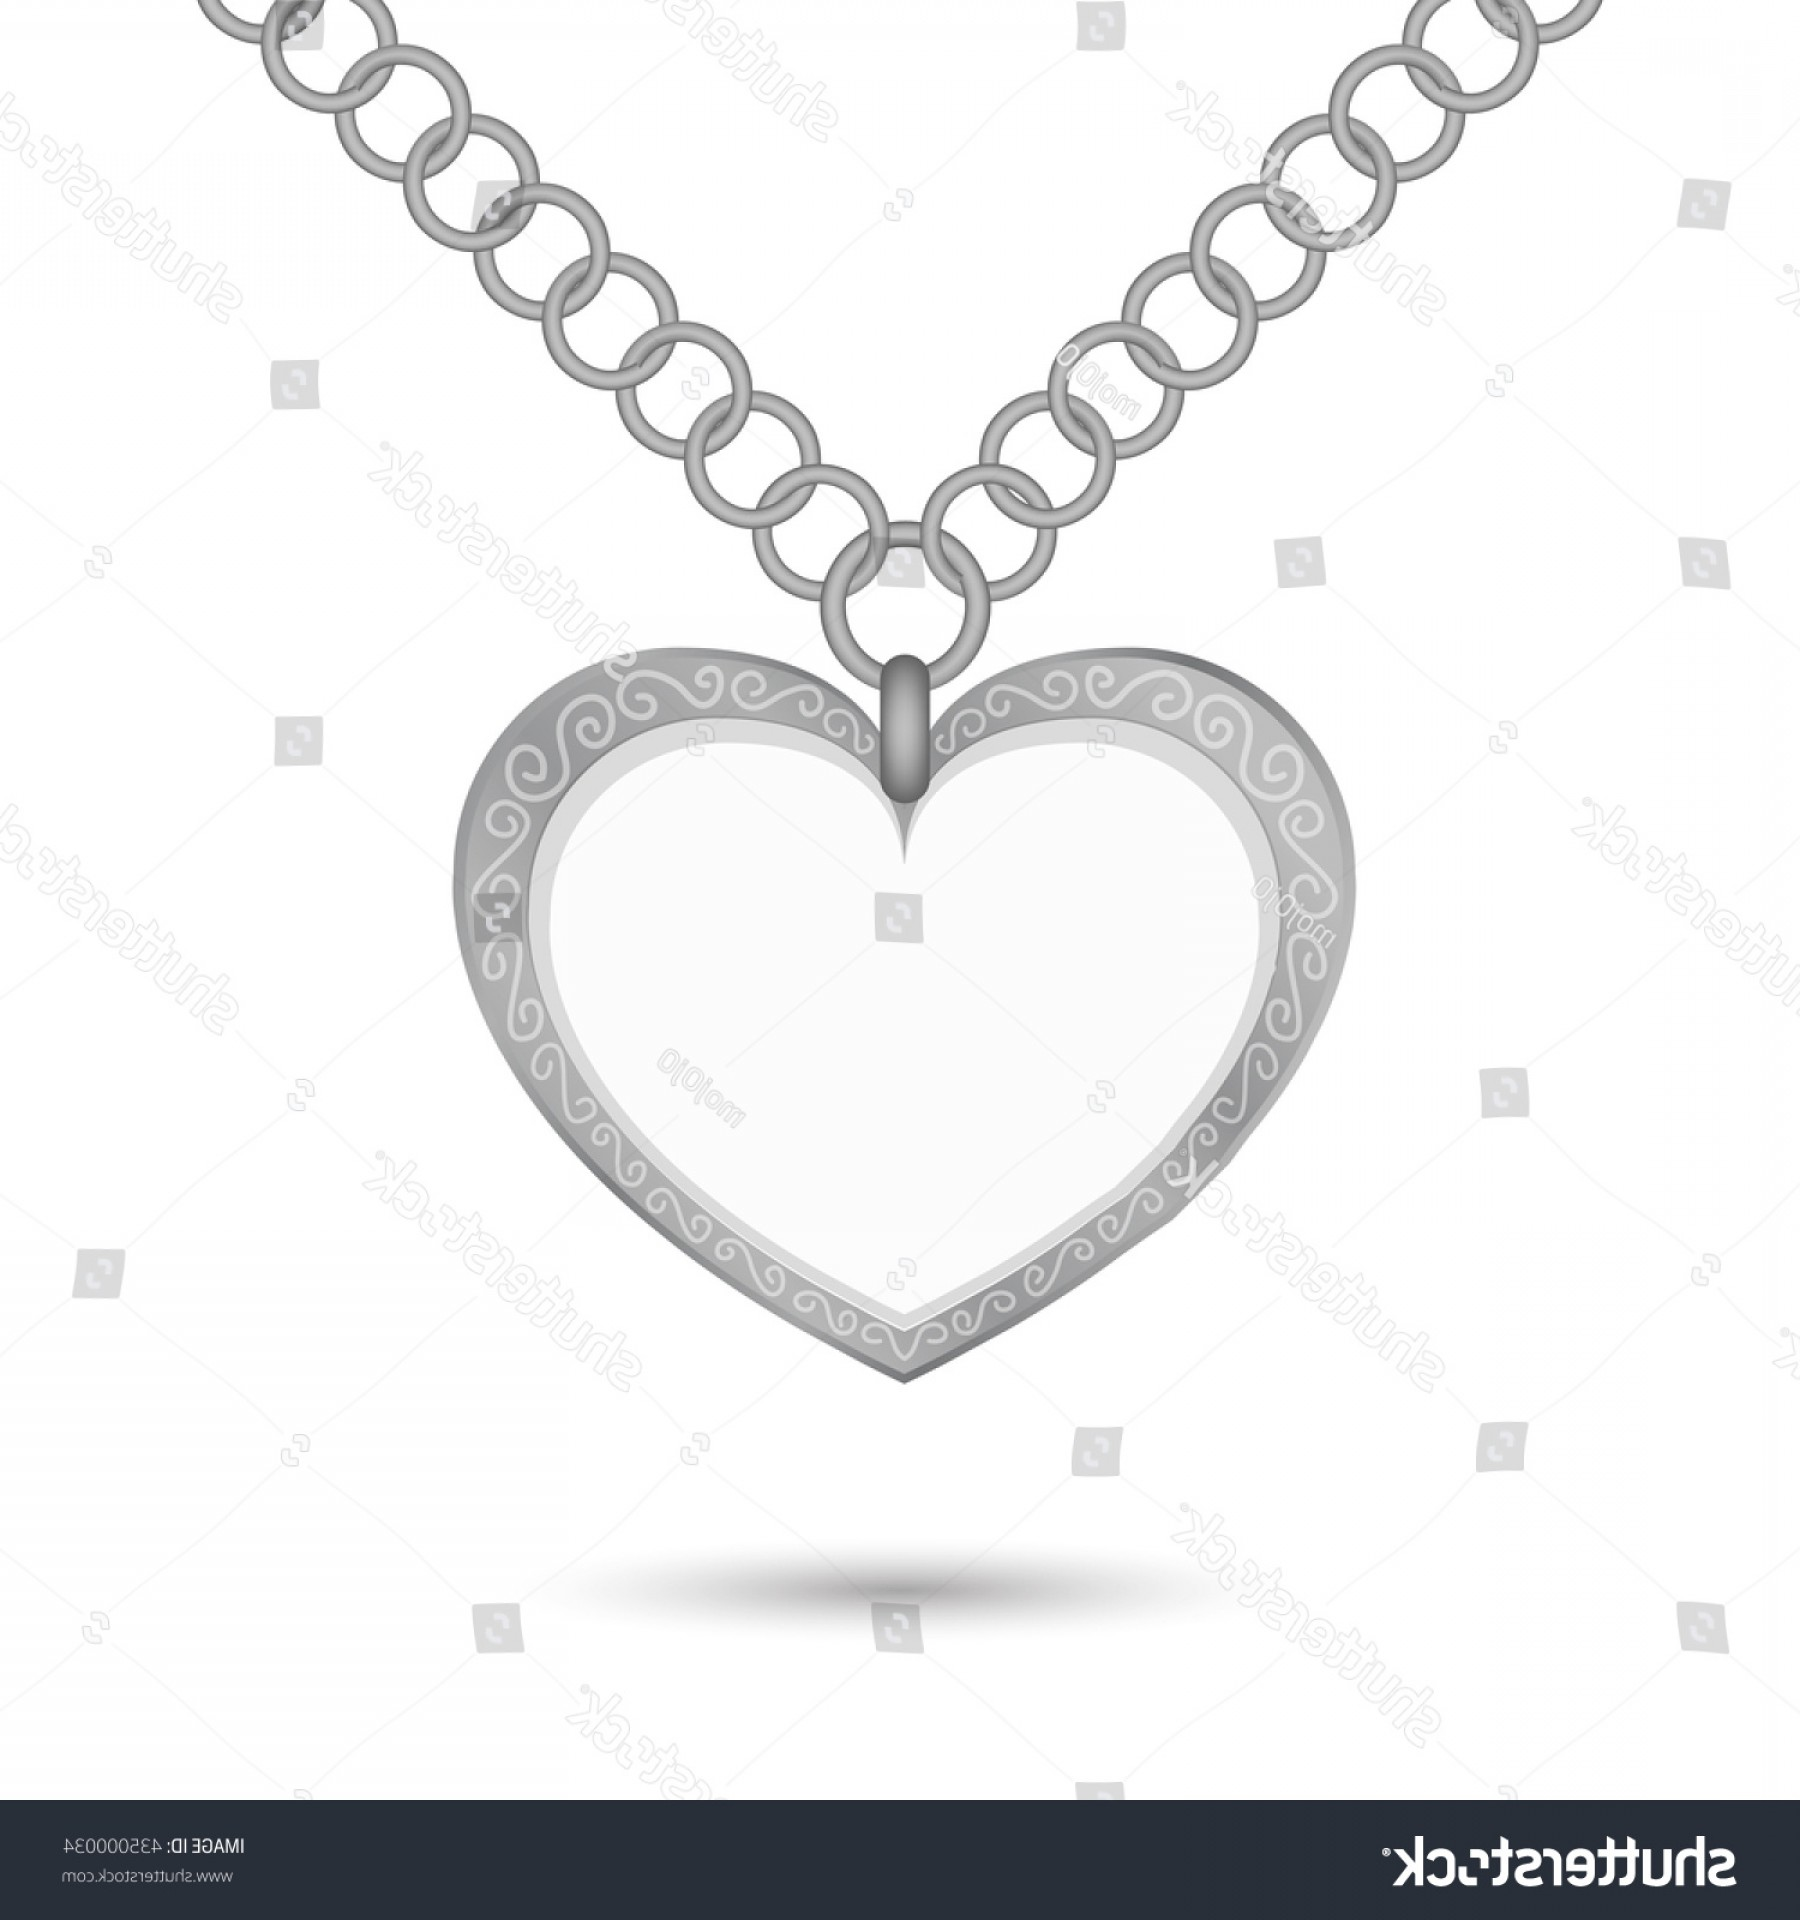 Silver Heart Vector: Empty Silver Heart Necklace Ring Chain